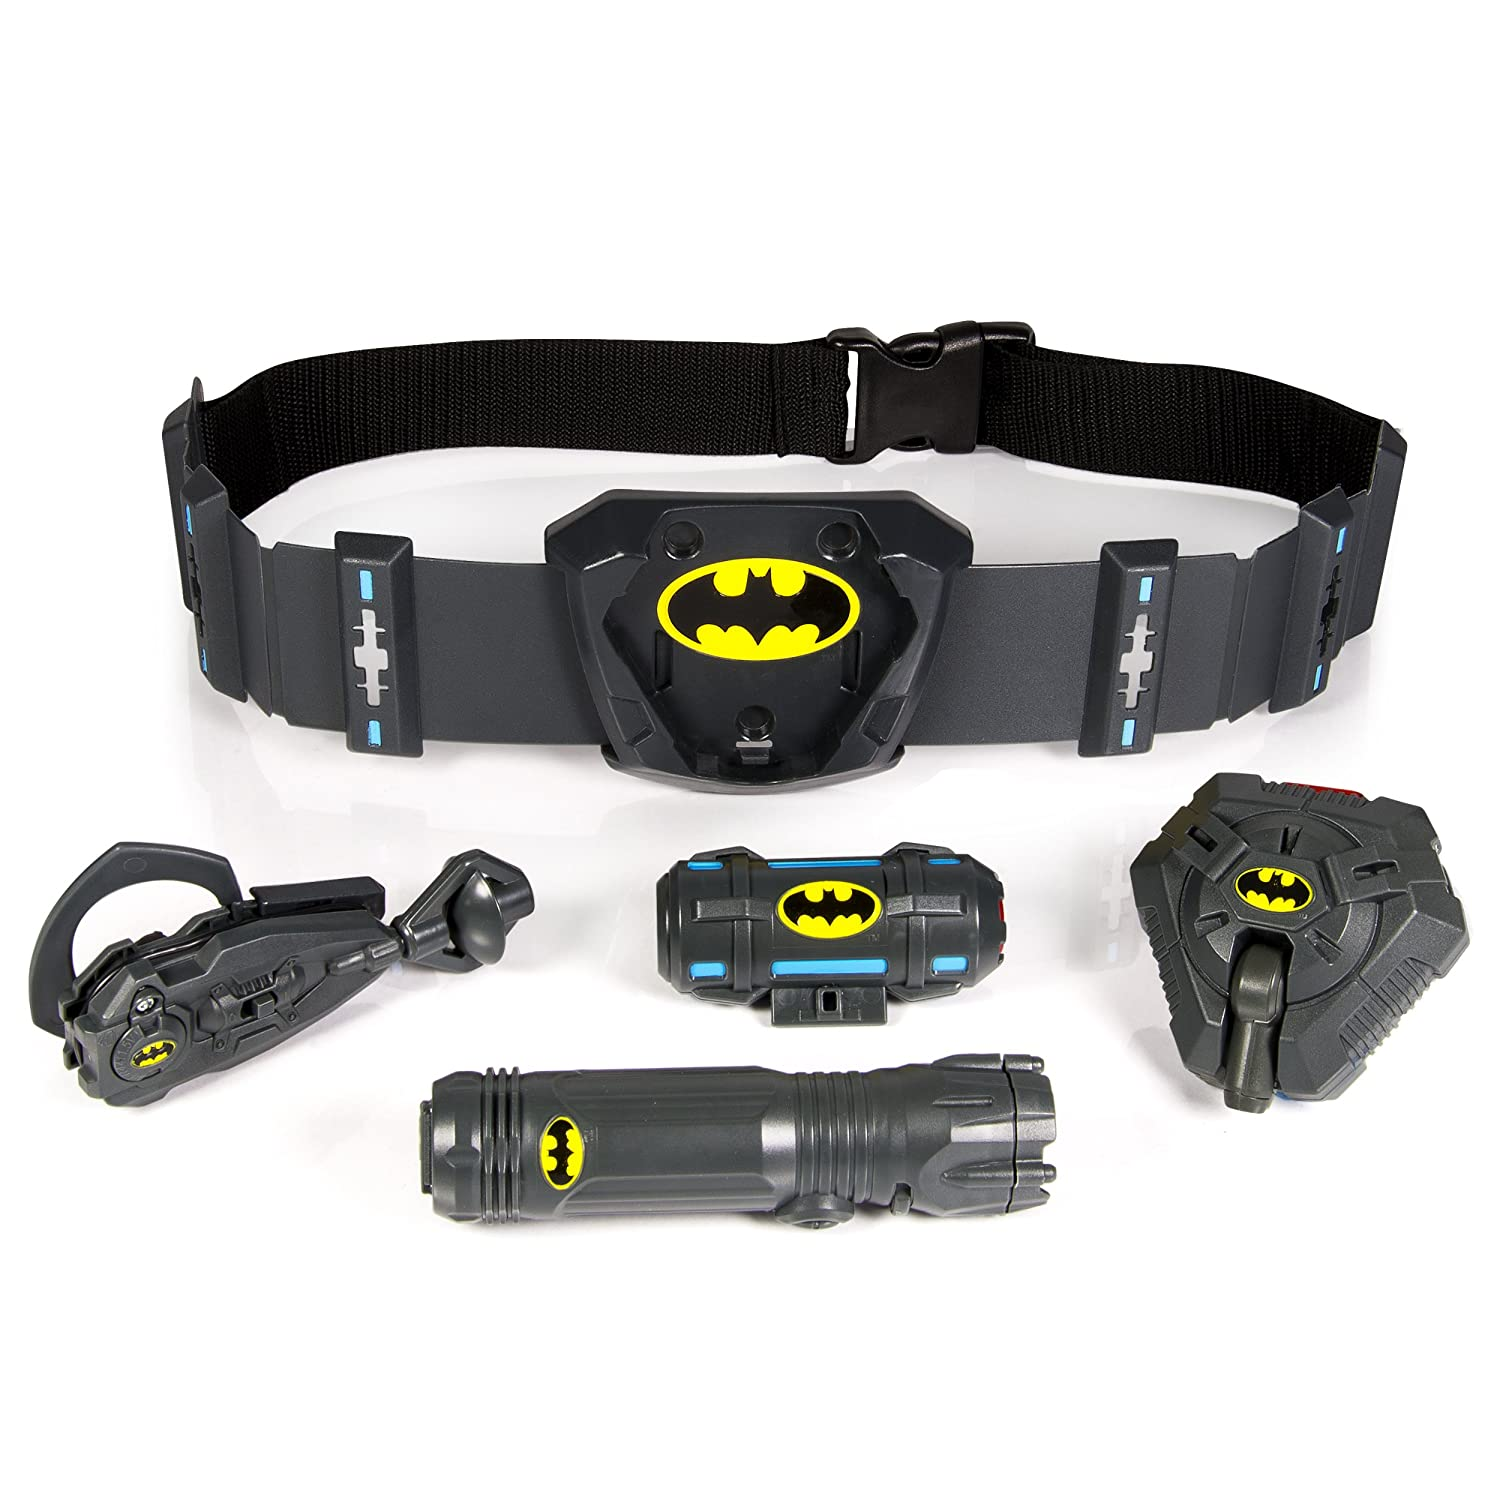 Amazon Spy Gad s Toys & Games